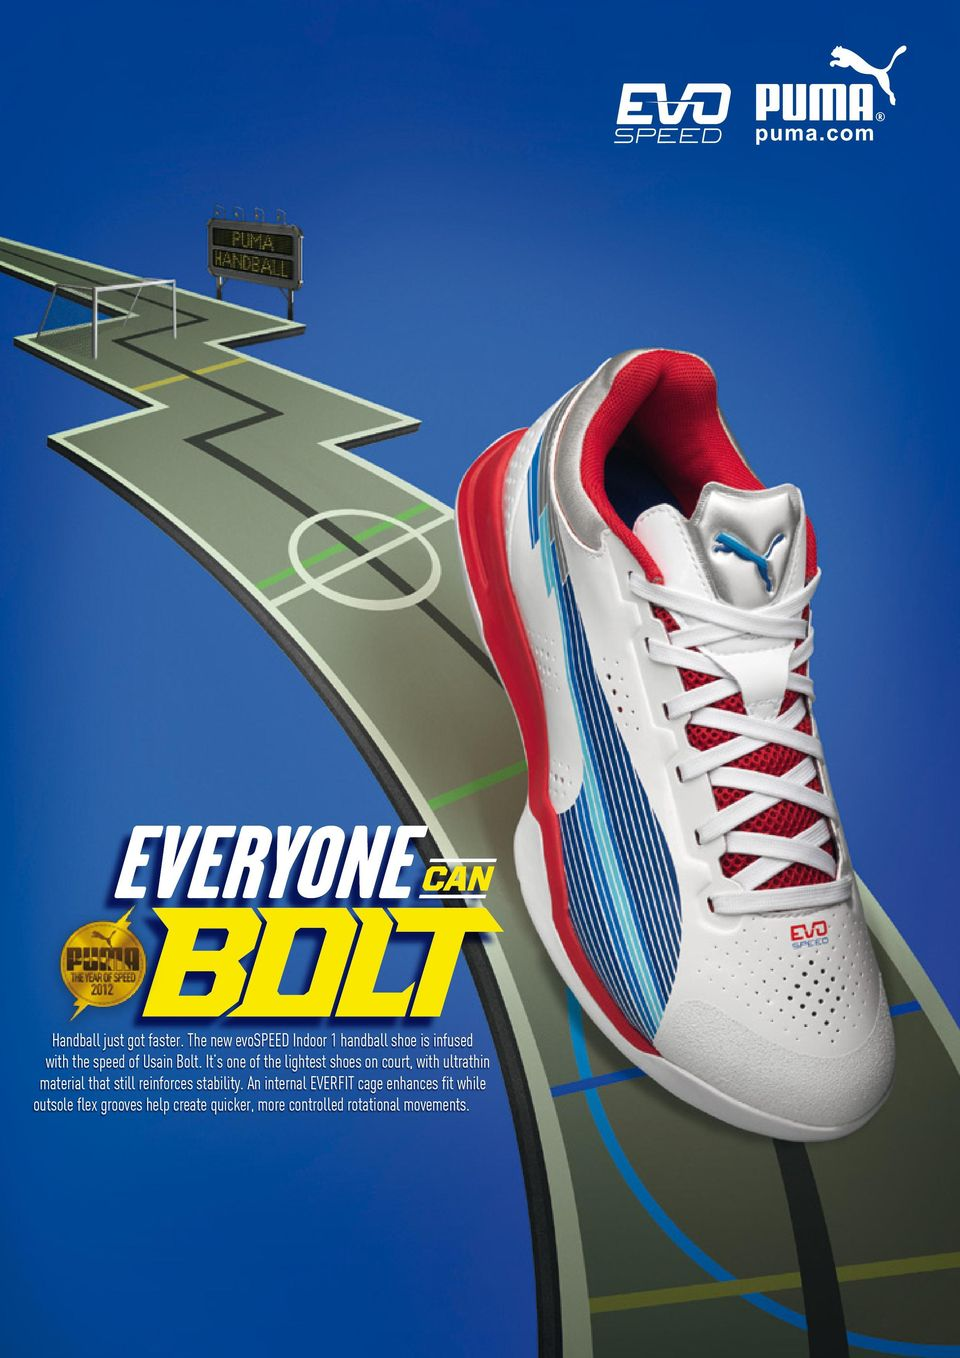 It s one of the lightest shoes on court, with ultrathin material that still